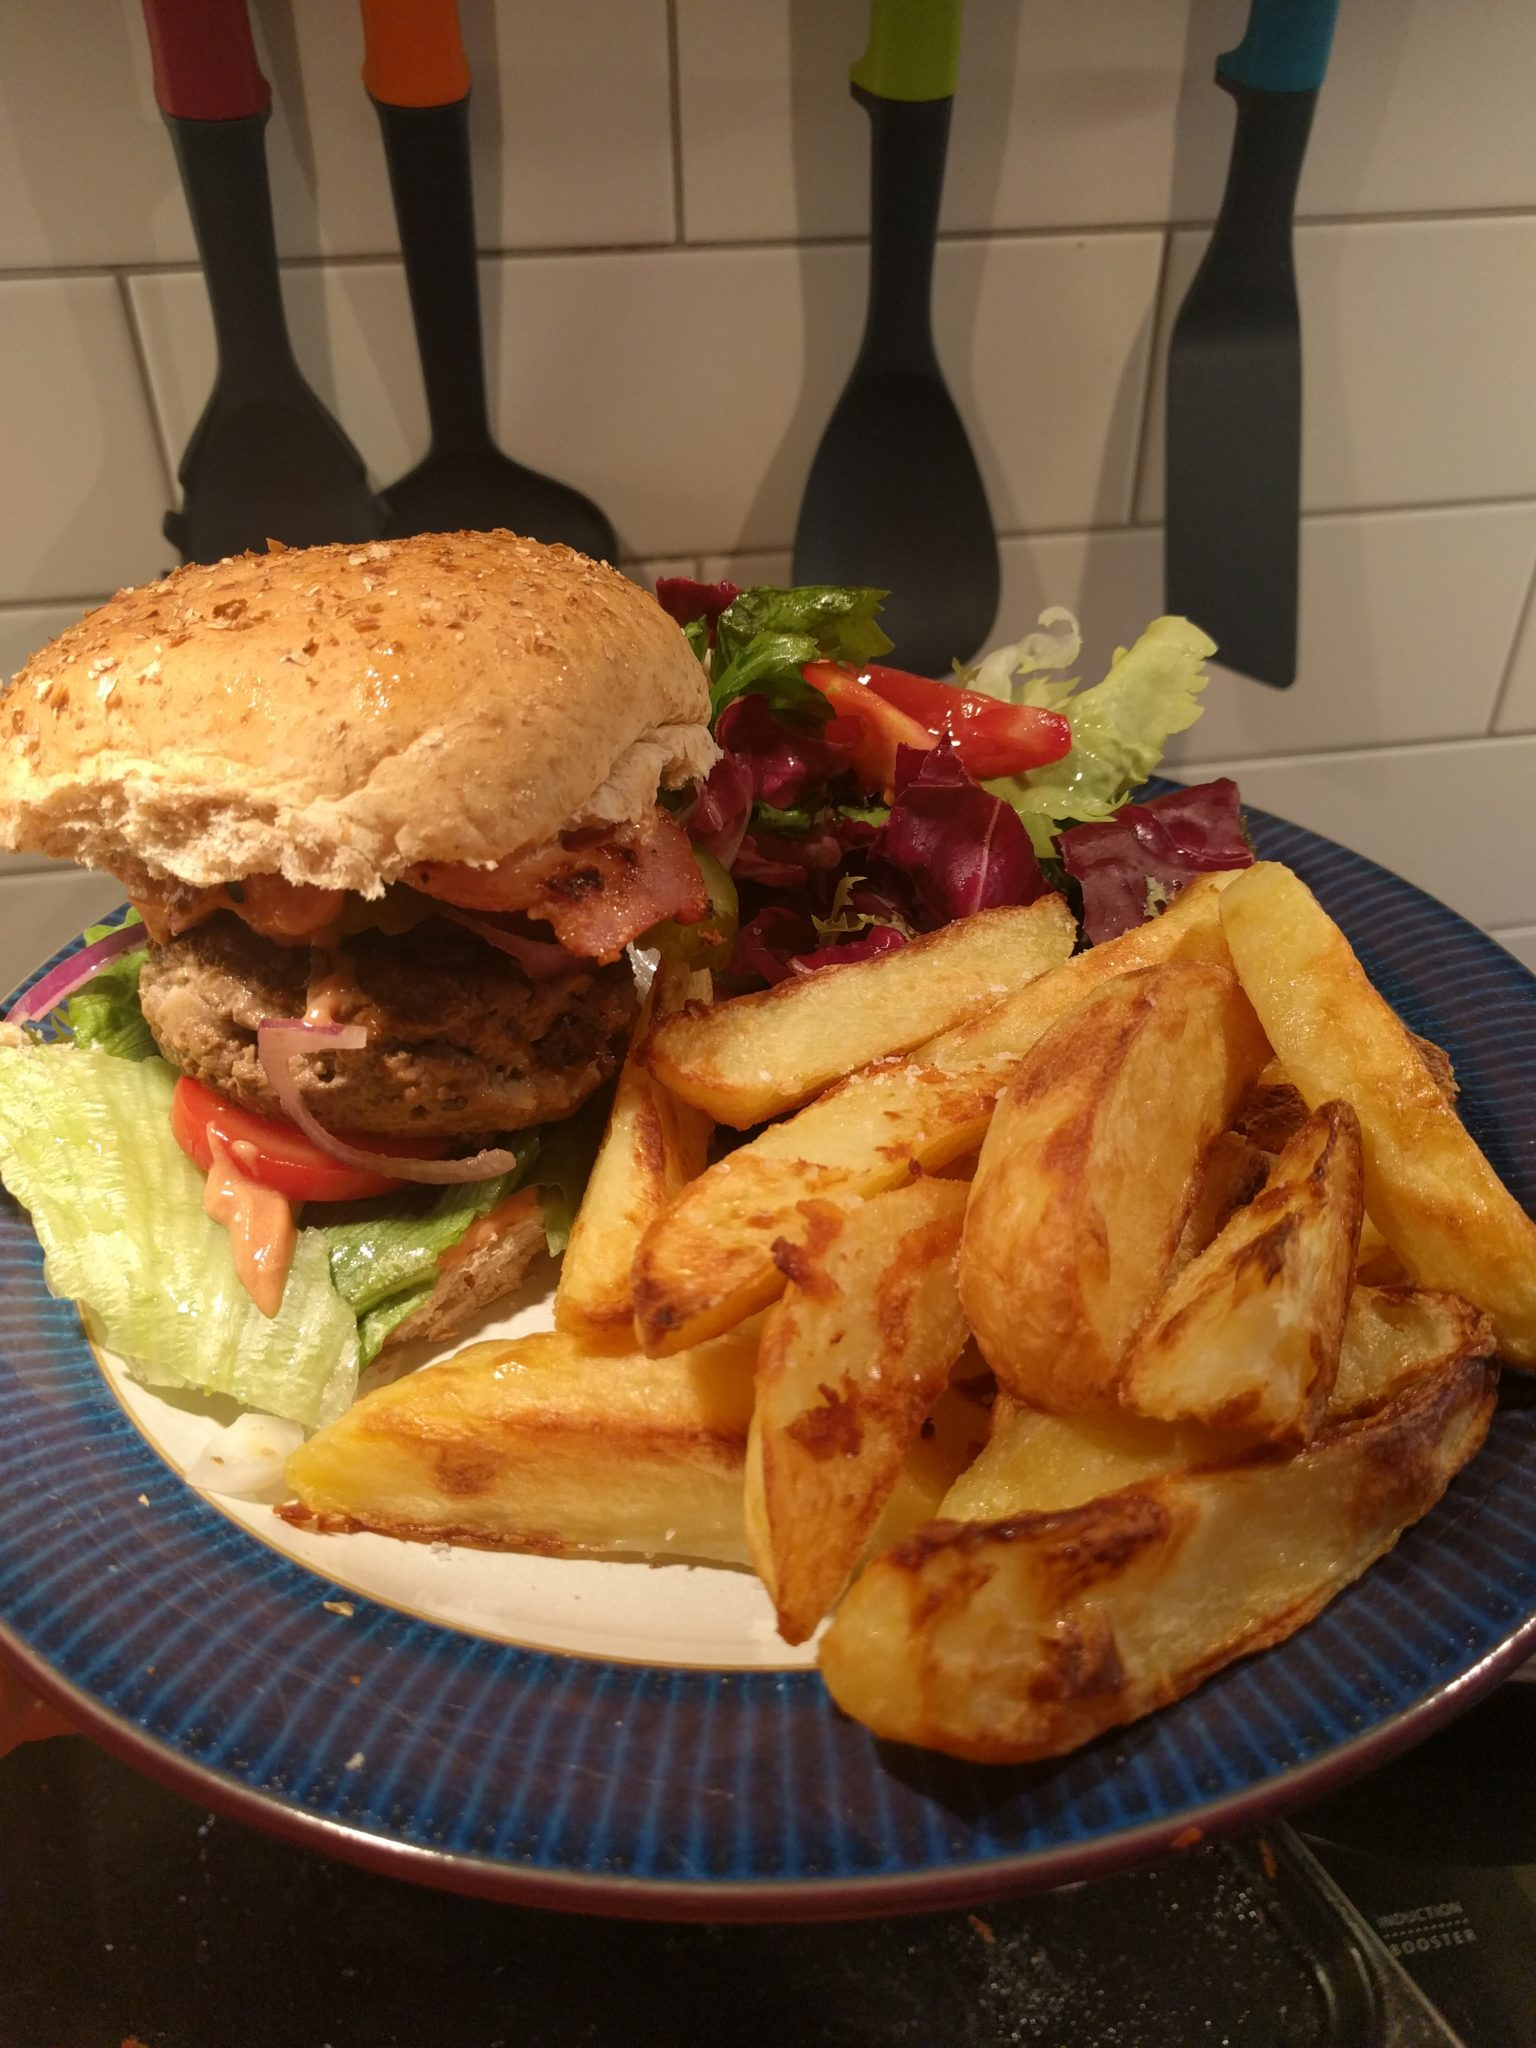 Homemade Burgers with Bacon – Get It Off Me